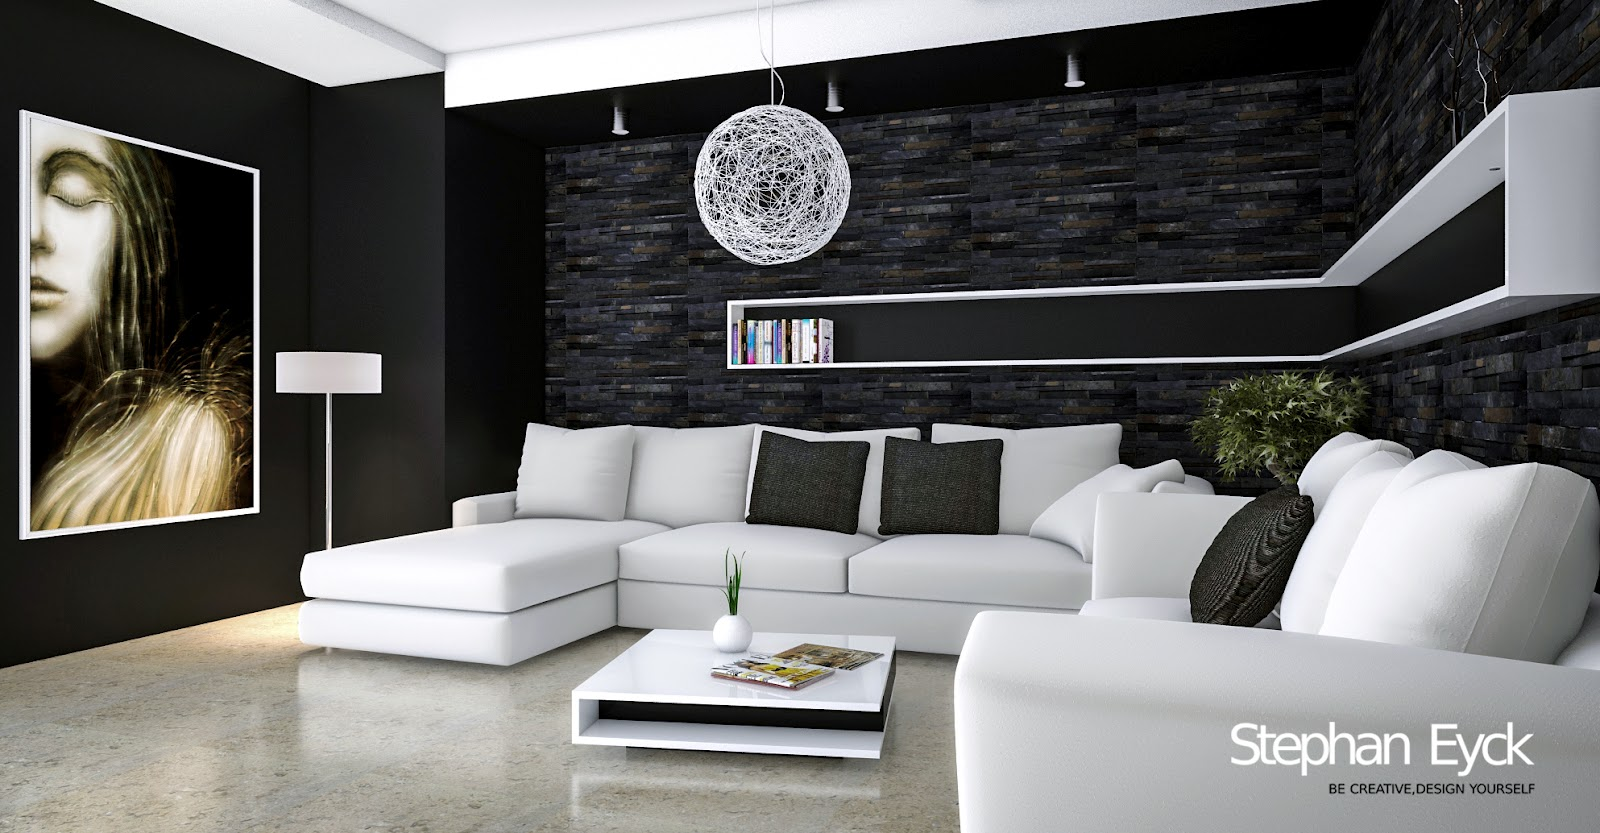 Stephan eyck design interior living room apartament galati for Interior design for 10x10 living room